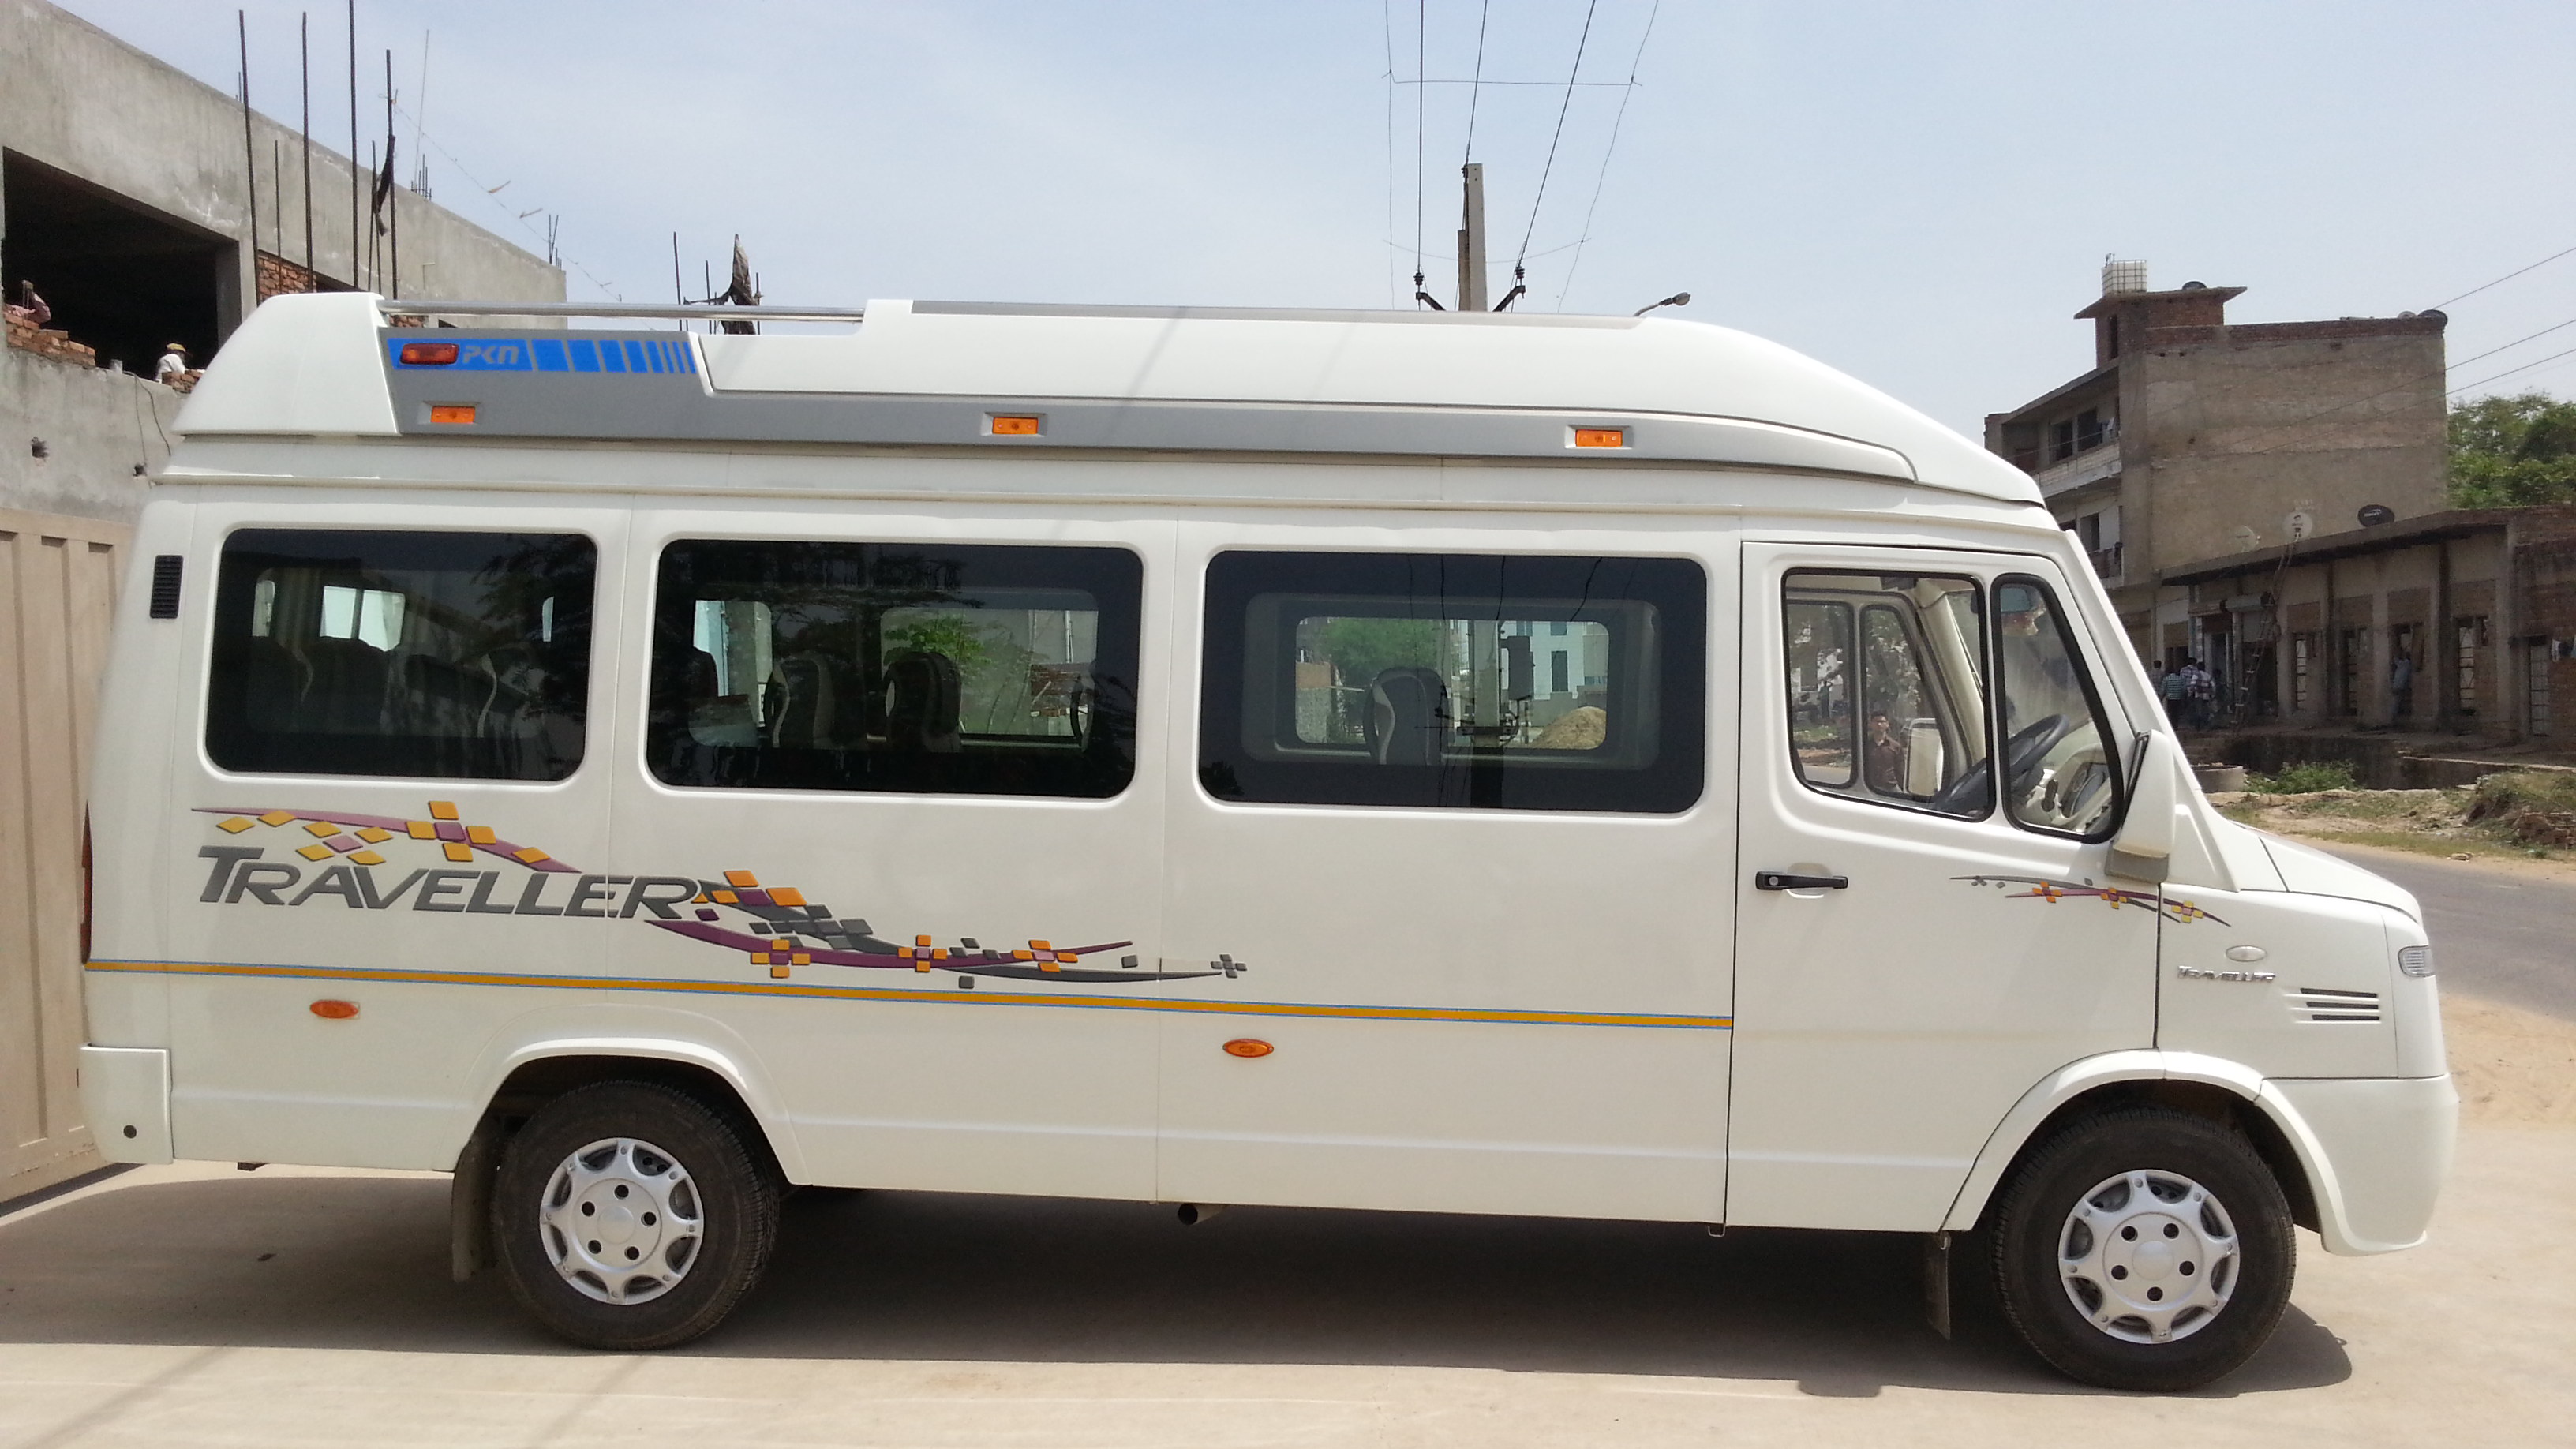 Force Traveller Hire In Jaipur Tempo Traveller Hire In Jaipur Car Hire